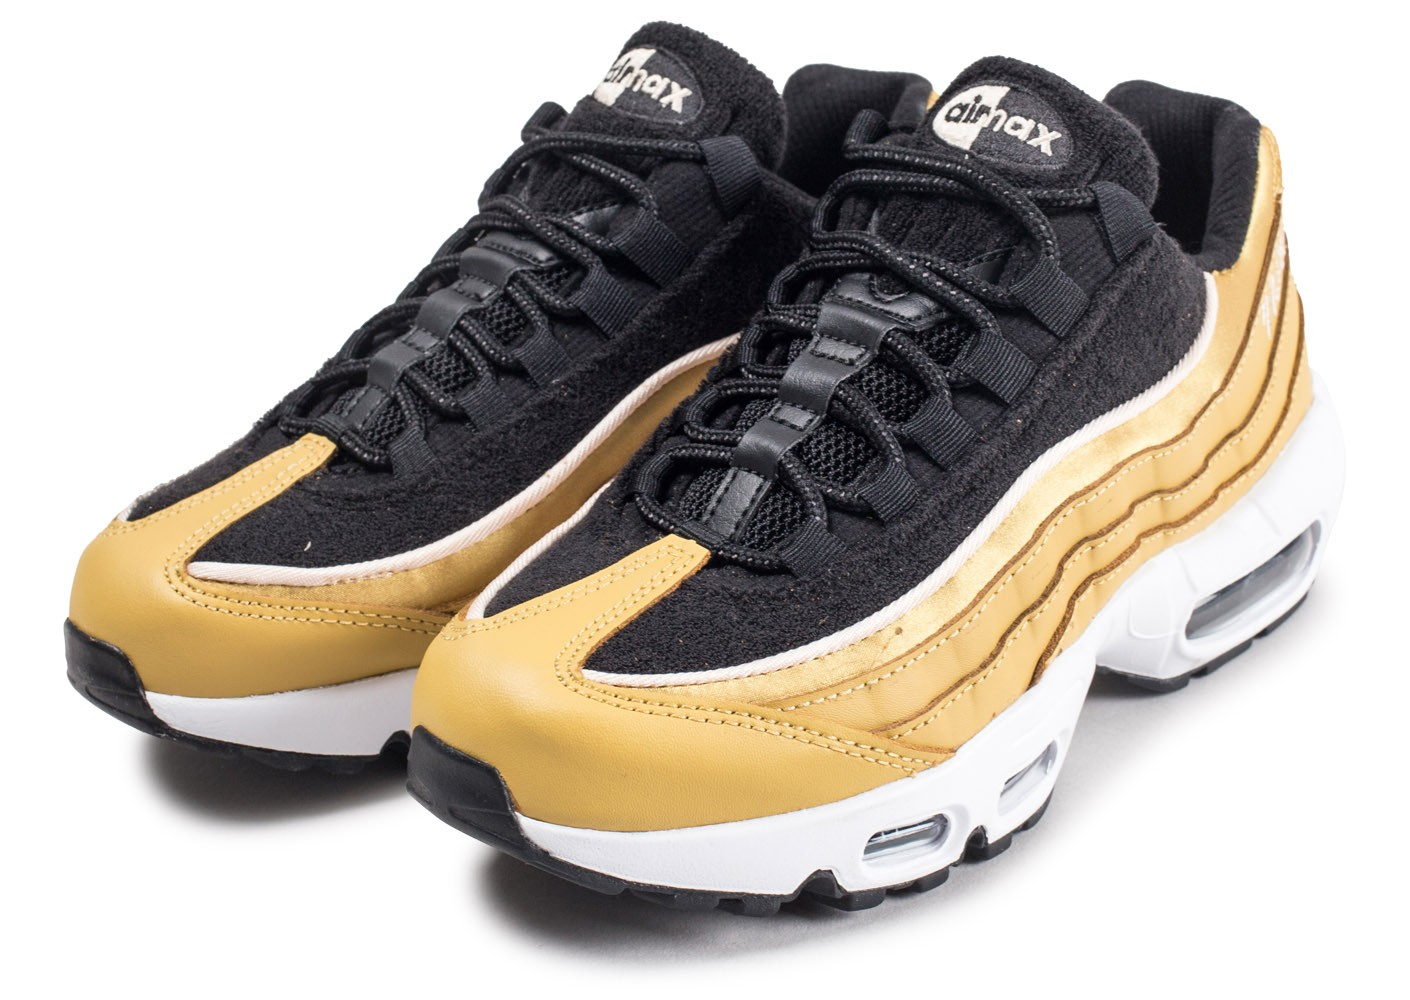 newest collection 0307a d8b0a ... Chaussures Nike Air Max 95 LX or femme vue intérieure ...